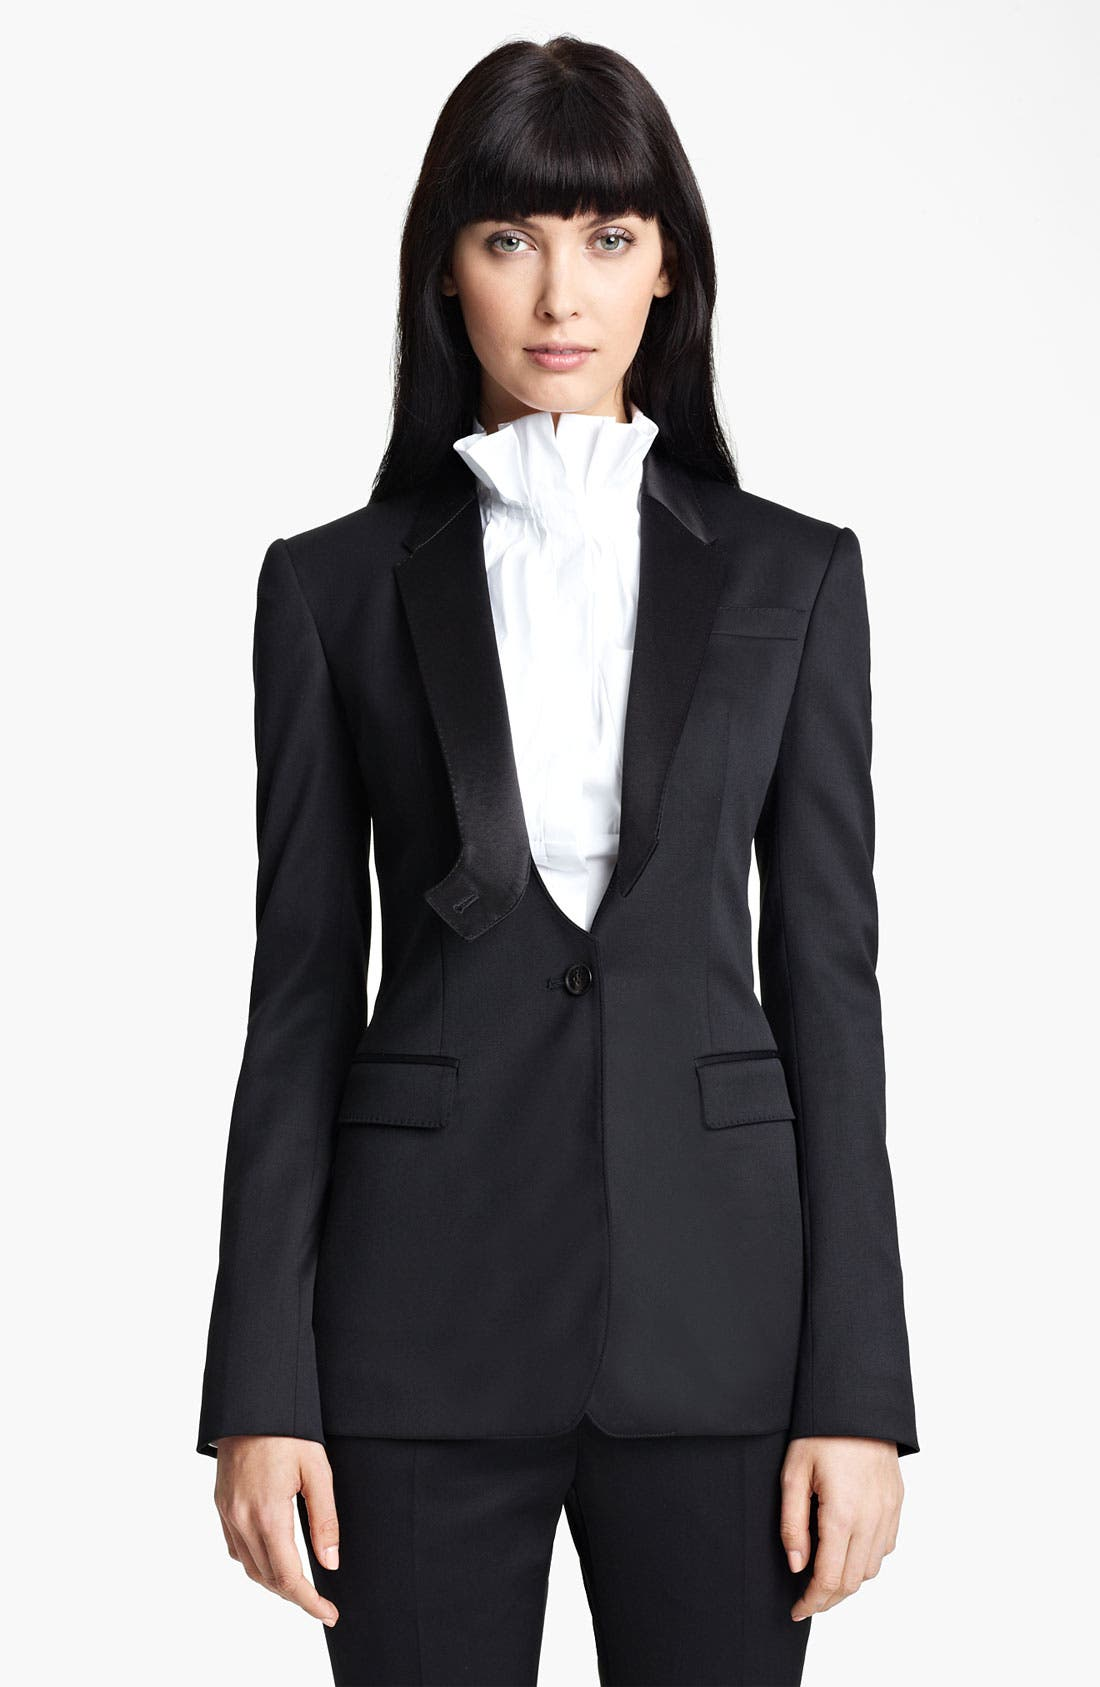 Main Image - Burberry Prorsum Stretch Wool Tuxedo Jacket